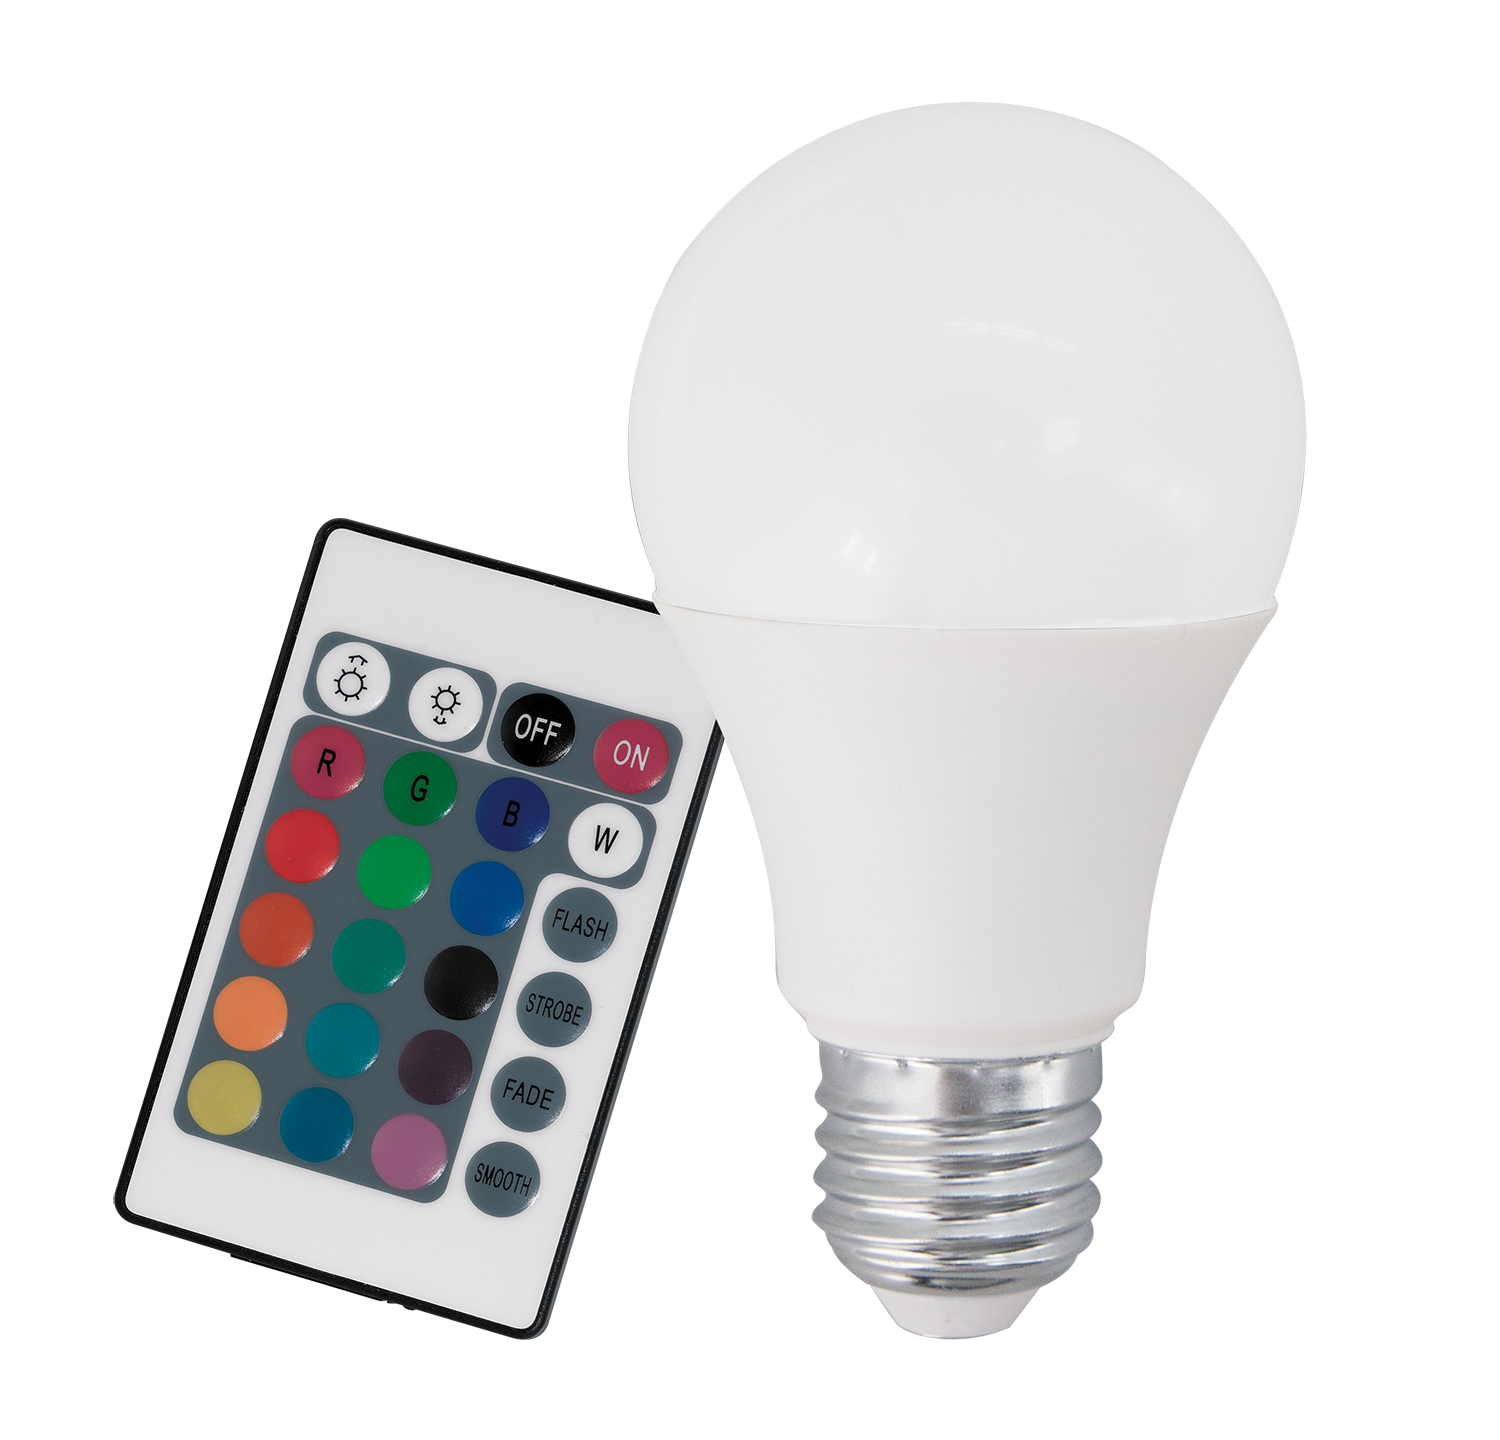 Лампа LED Eglo 10899 A60 7.5W RGB 220V E27 Dimmable ПДУ